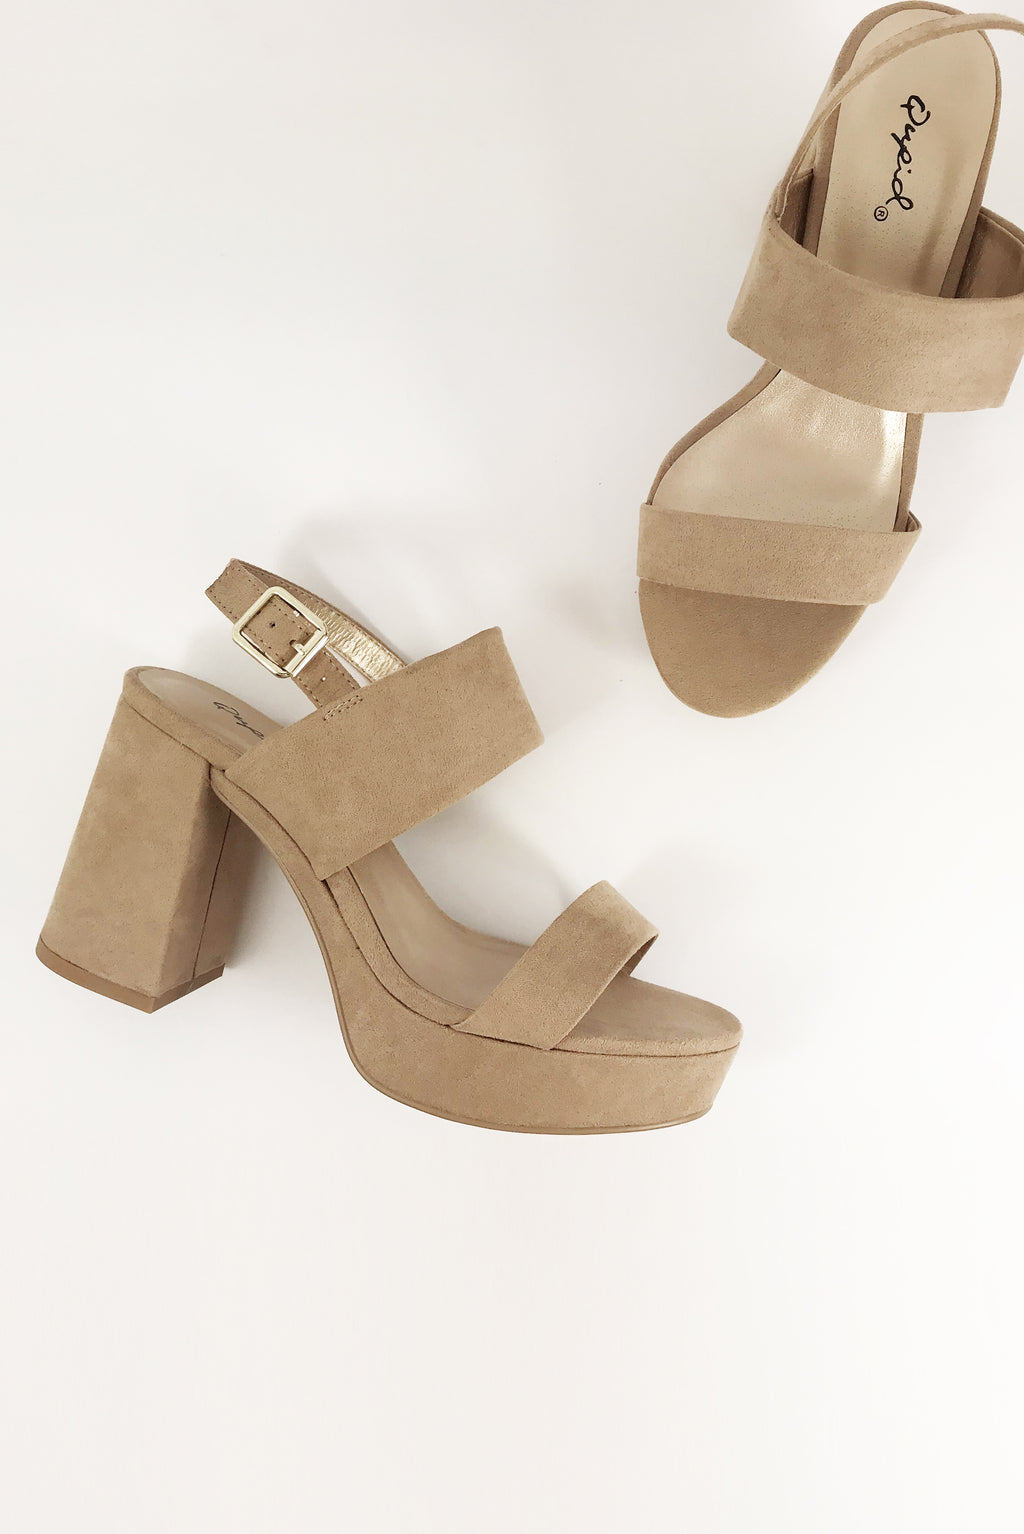 Eden - Warm Taupe Double Band Slingback Sandal